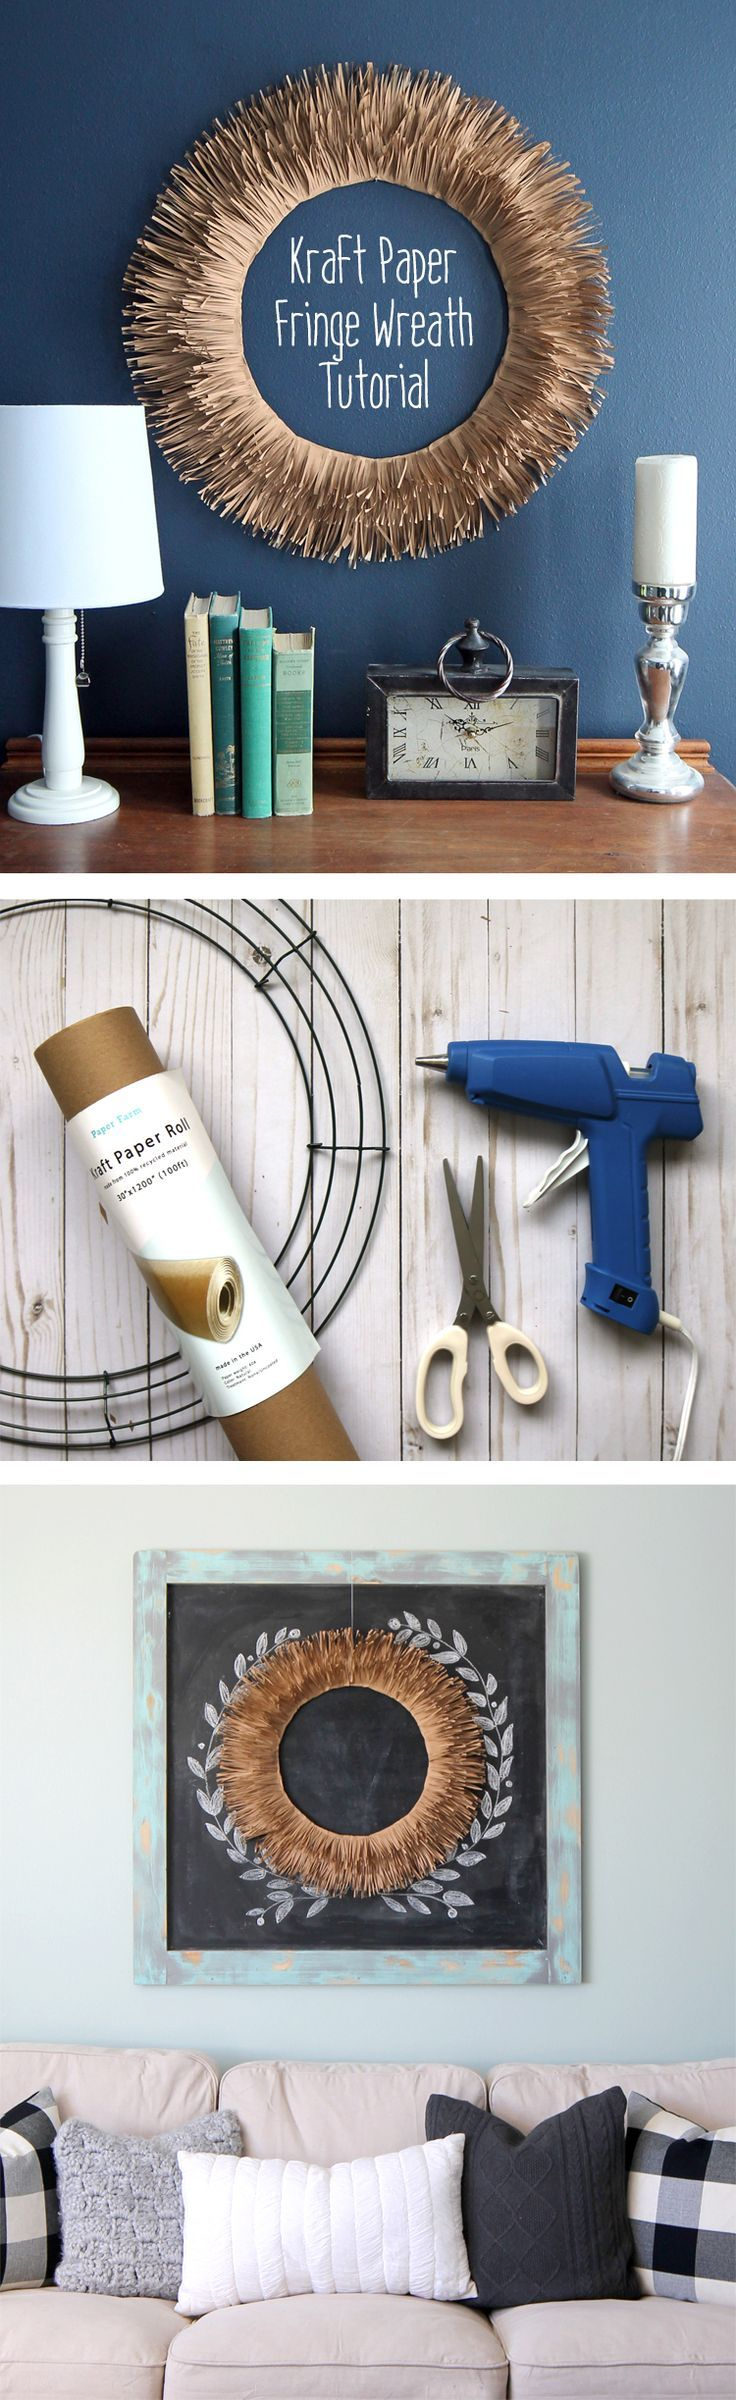 159 best images about paper bag crafts on pinterest for Easy things to make out of paper